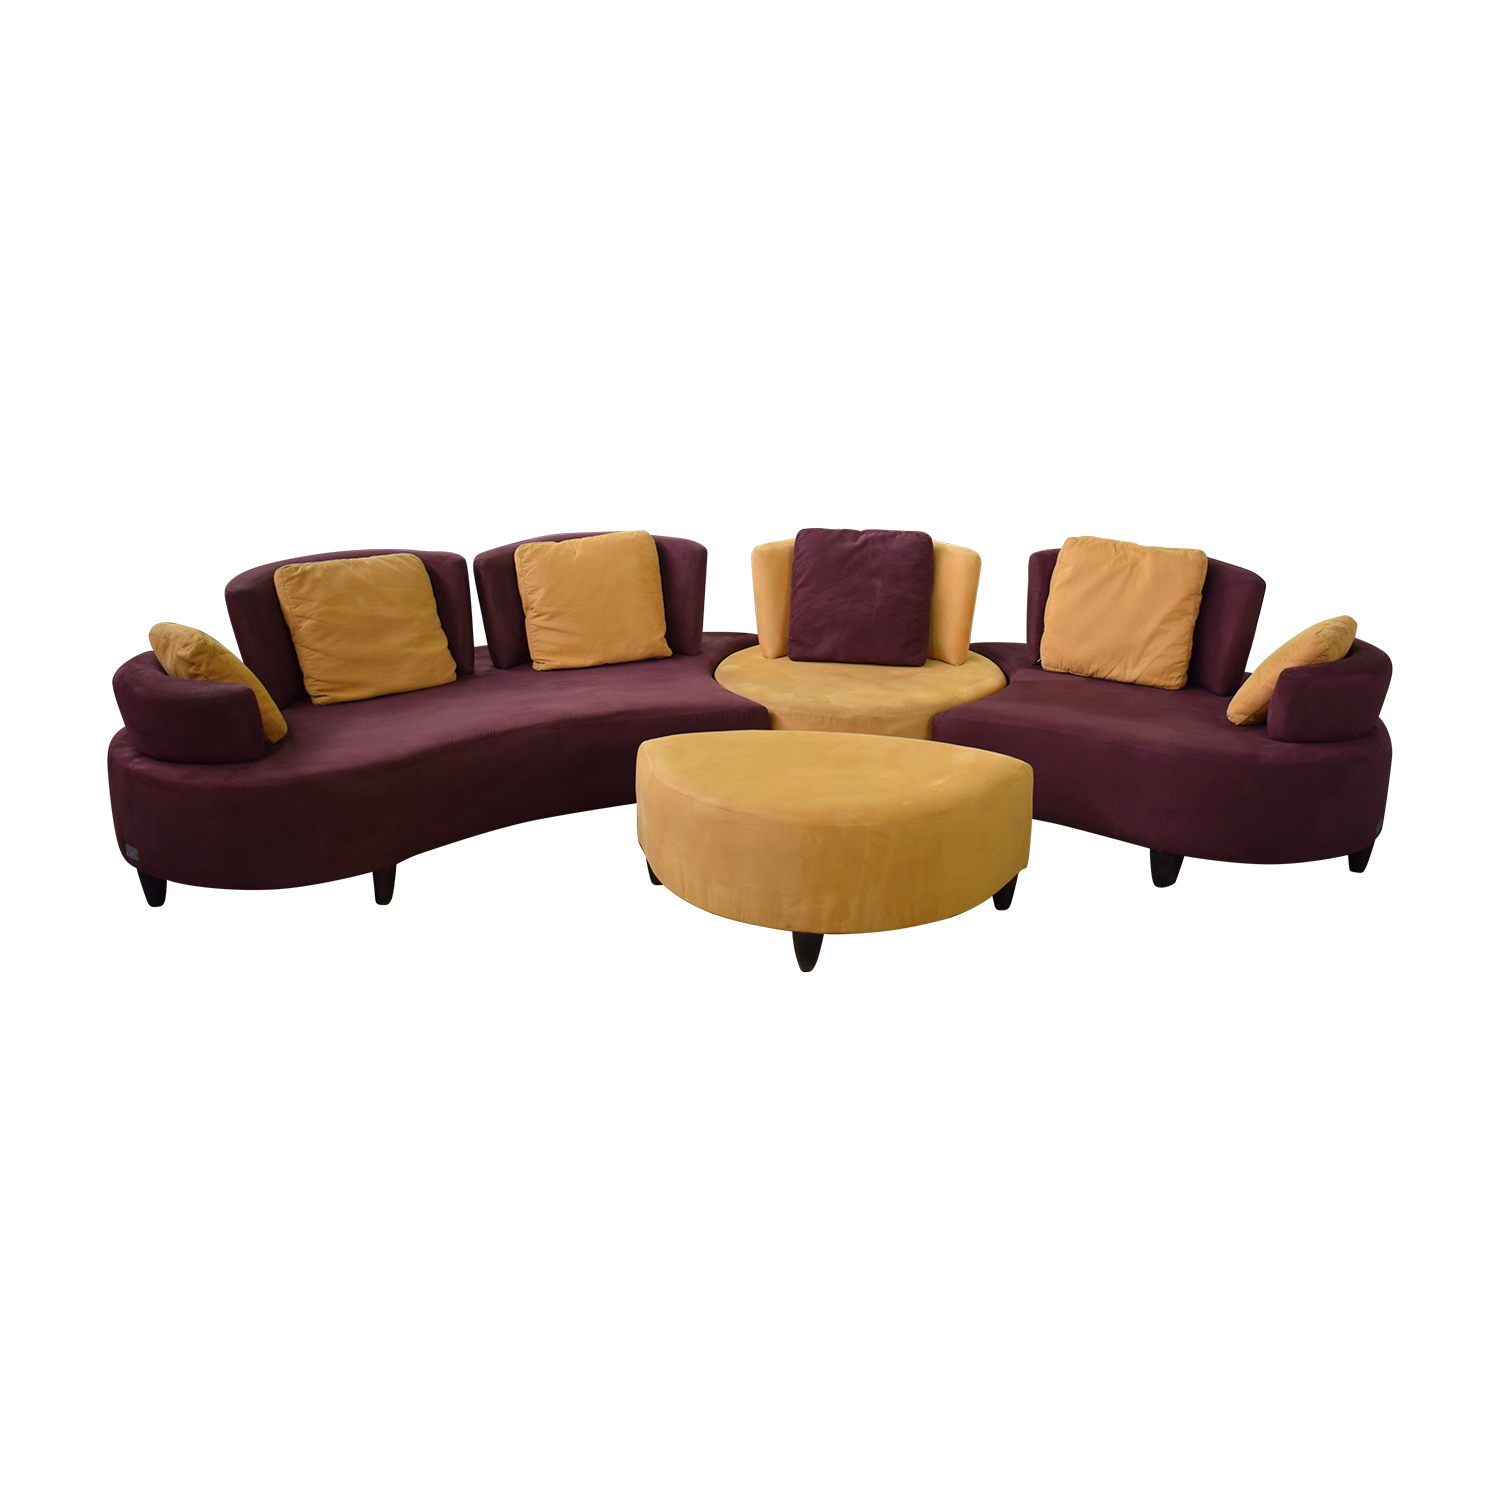 Normand Couture Design Normand Couture Design Cameleon Sectional Sofa Sectionals